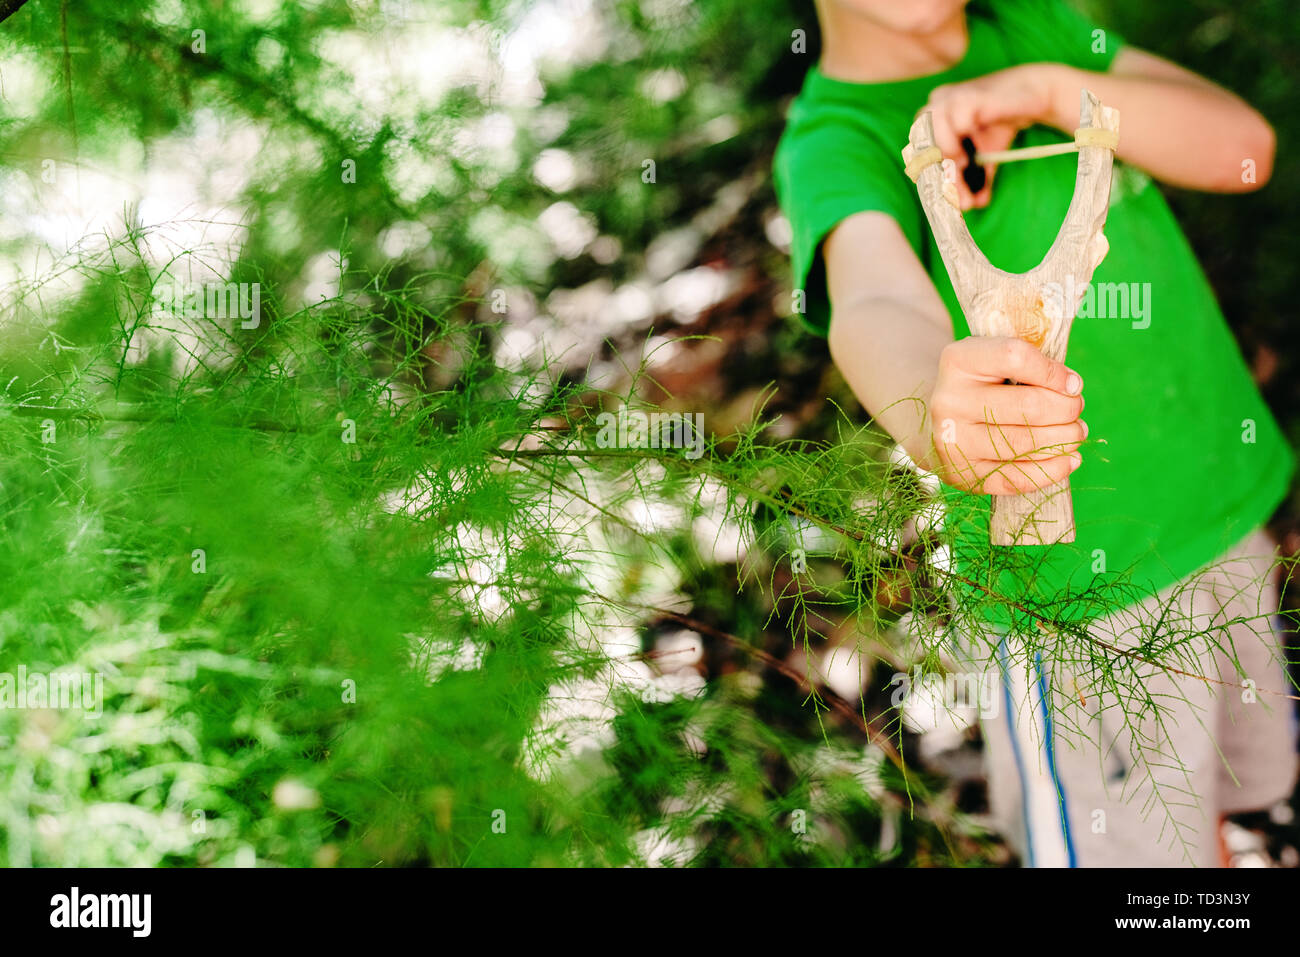 Boy threatening his schoolmates with a slingshot. - Stock Image